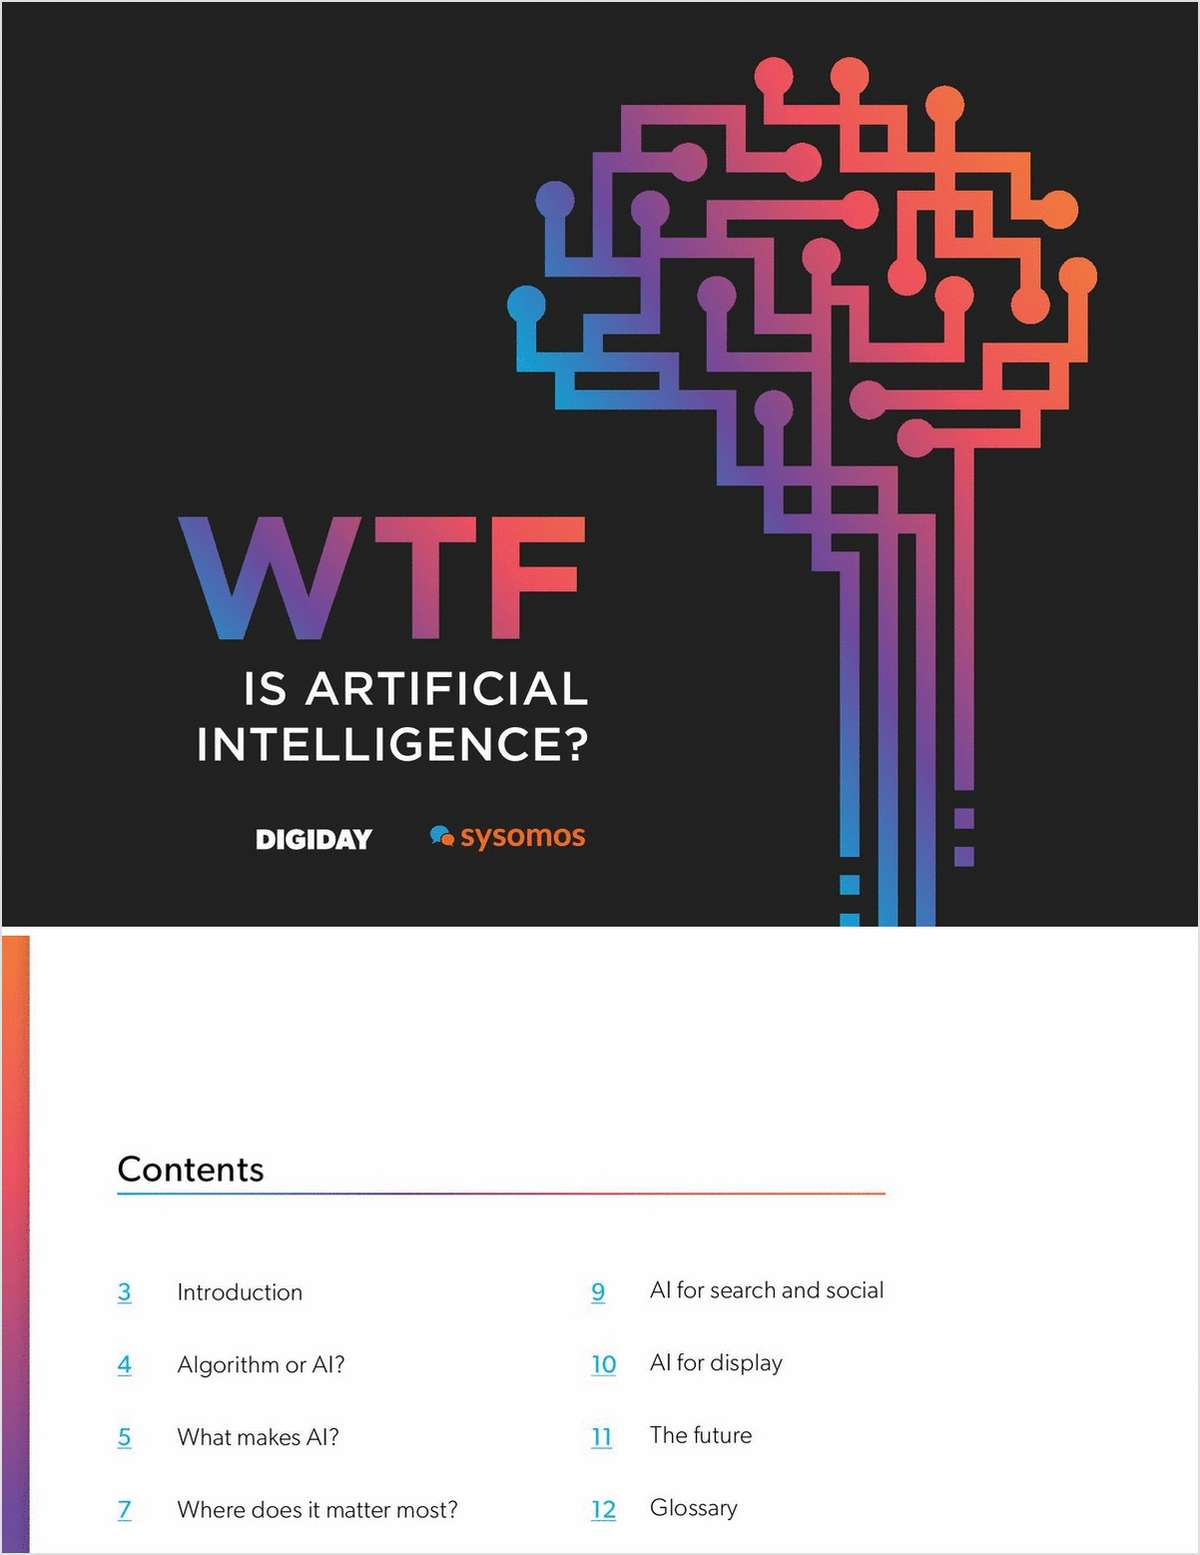 WTF is Artificial Intelligence?